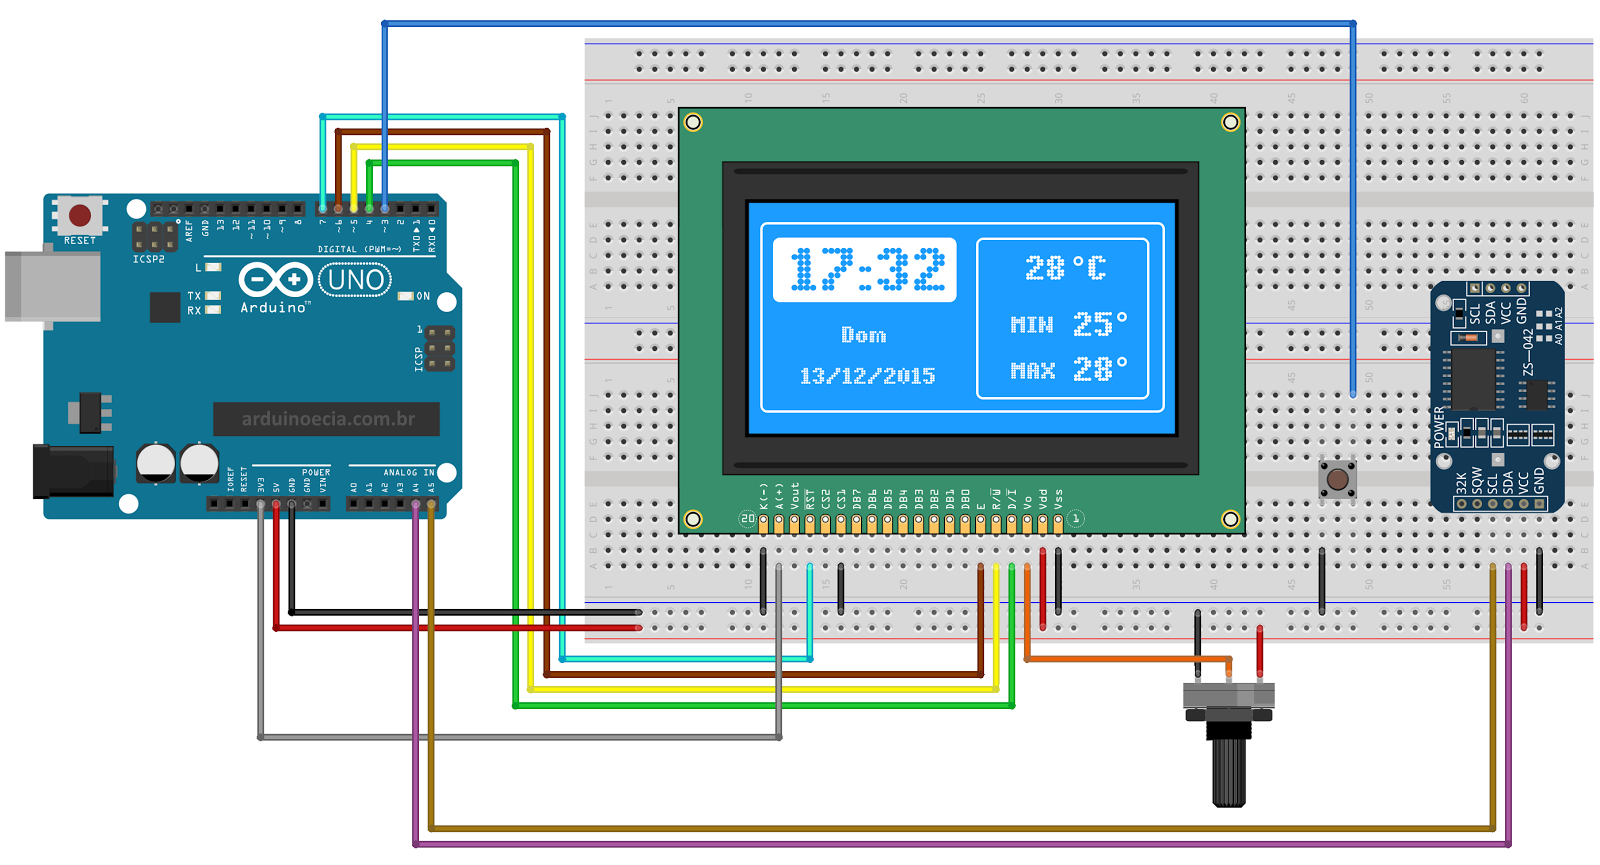 Relgio Com Display Lcd 128x64 E Mdulo Rtc Ds3231 Arduino And Real Time Clock Circuit Schematics Circuito